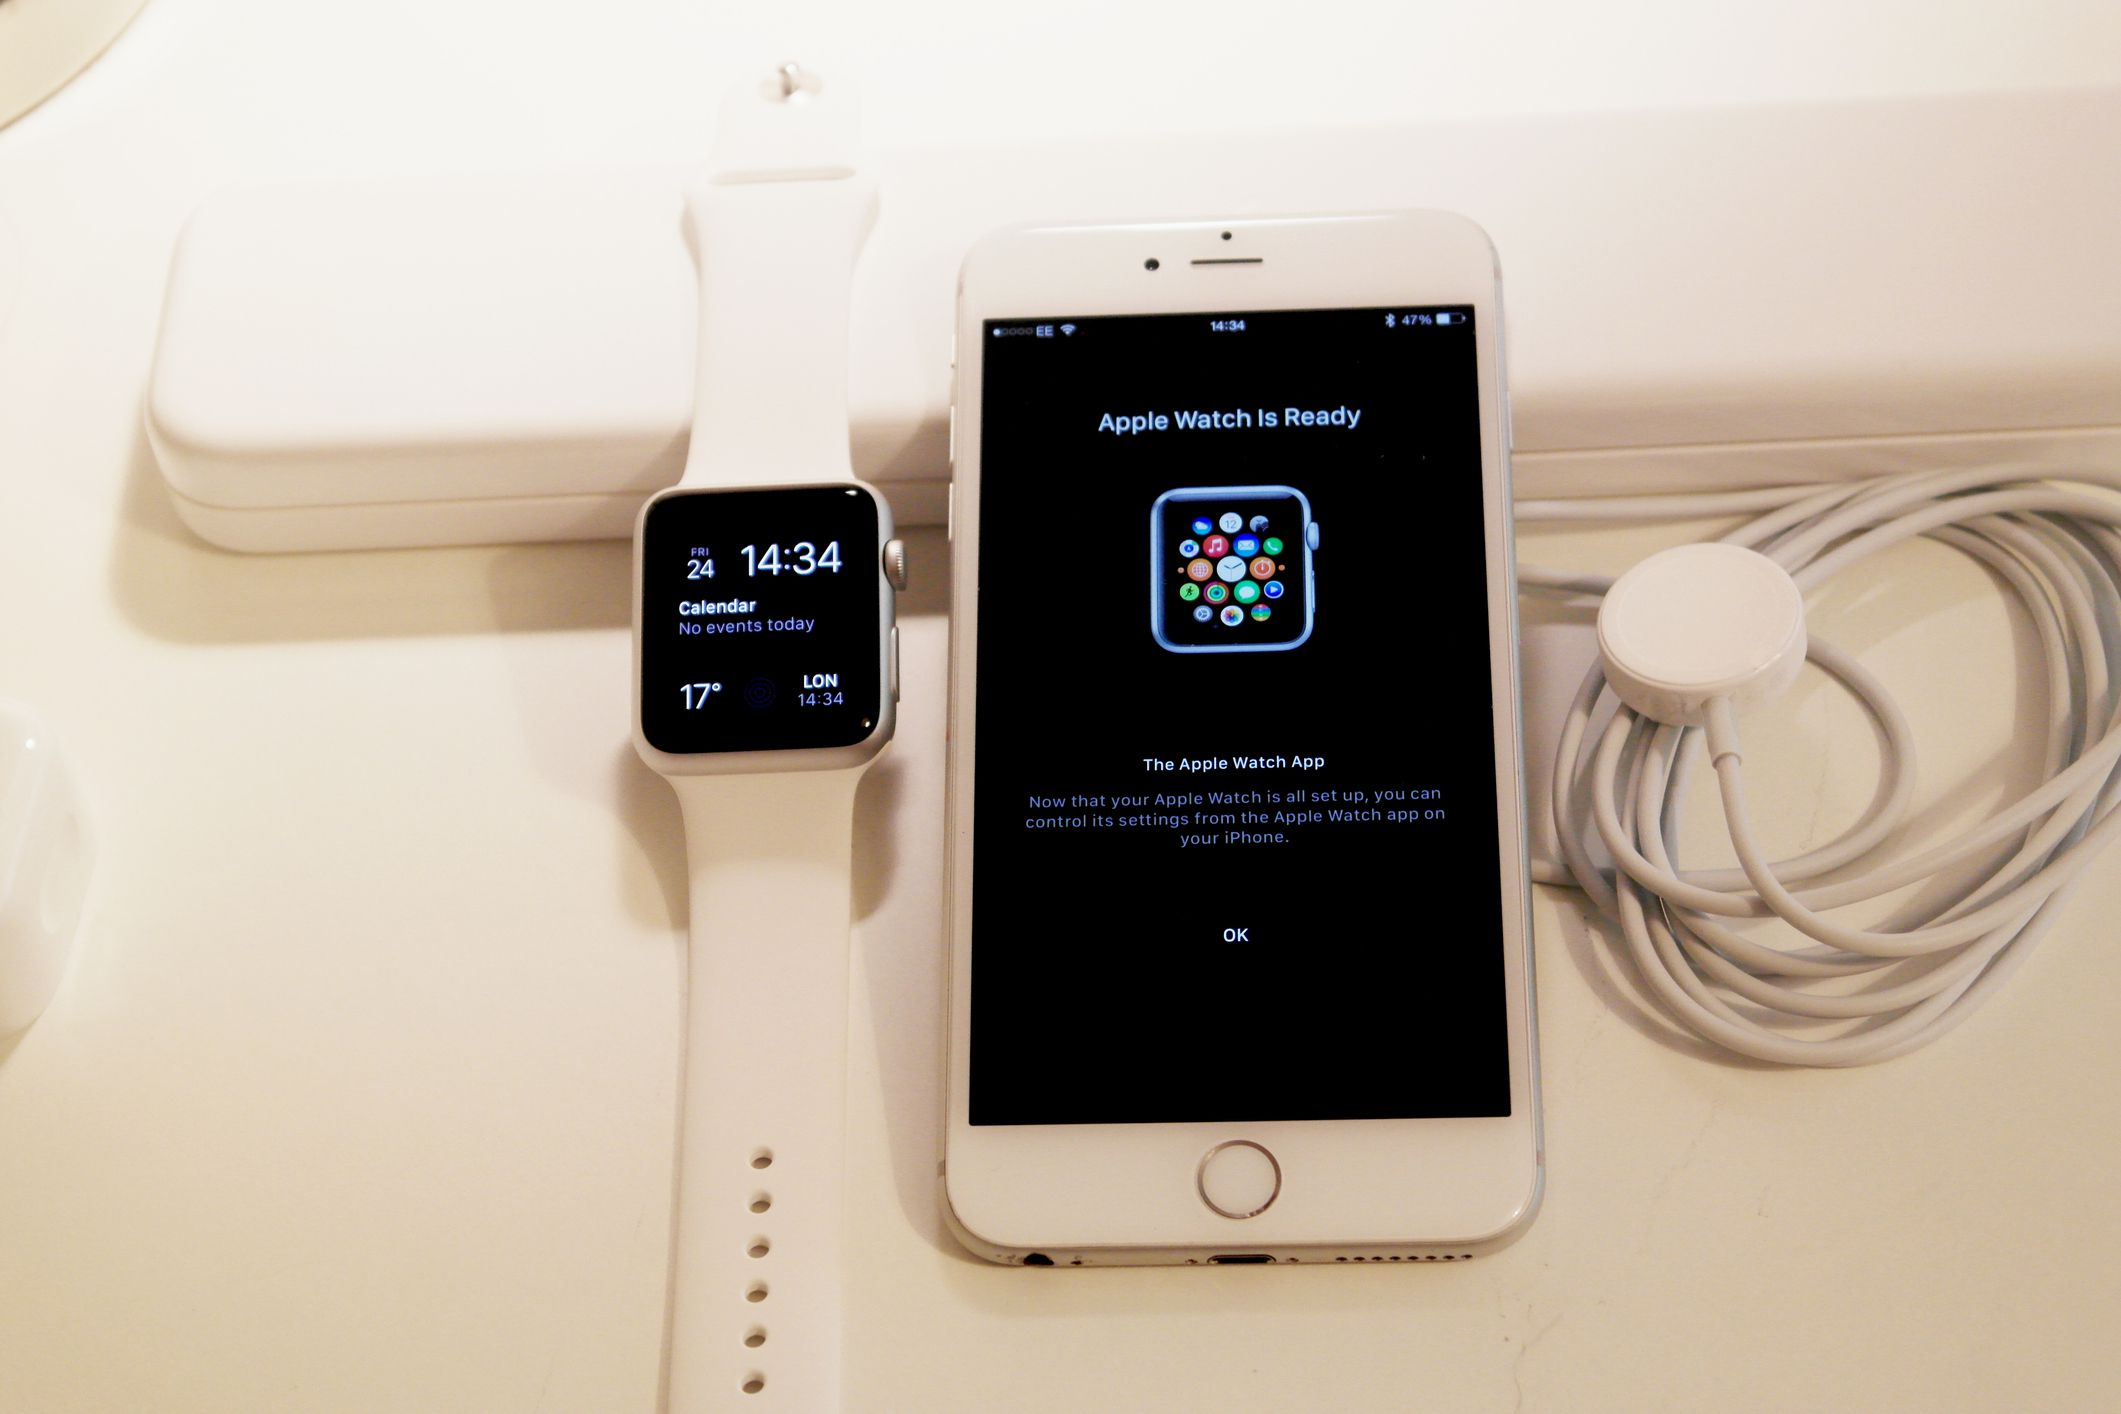 Apple Watch and iPhone after setup